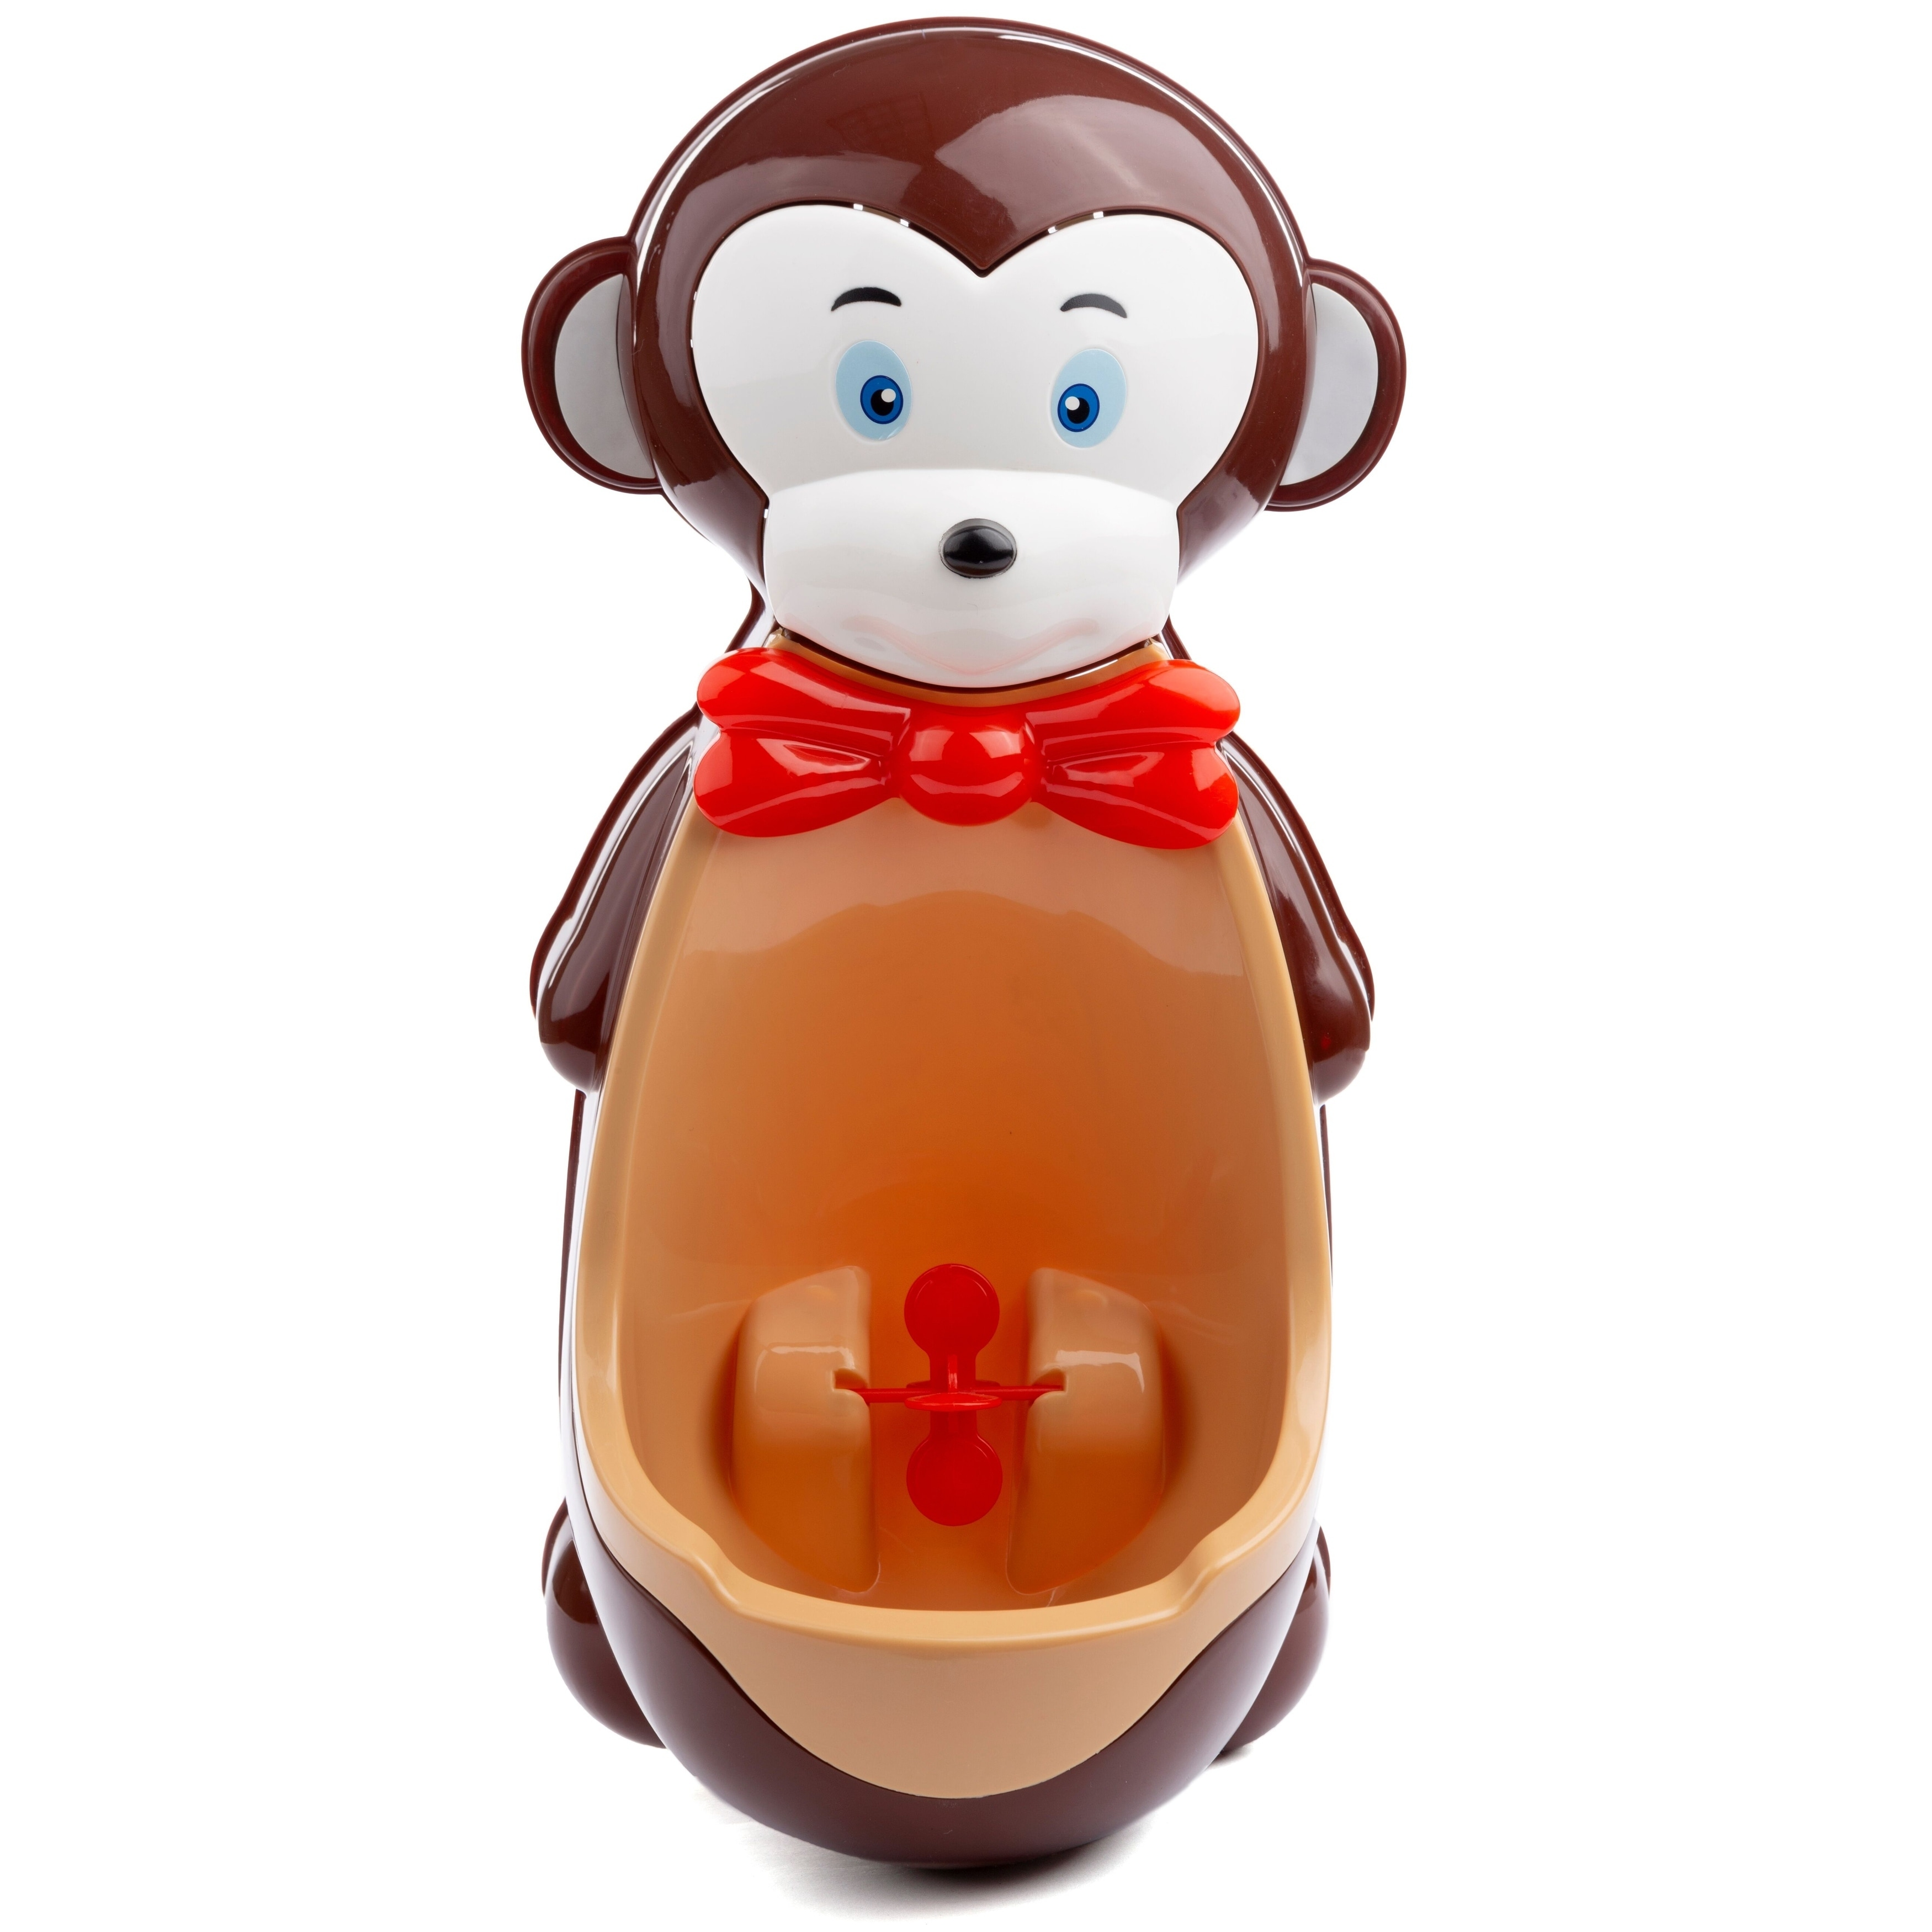 Potty Training Baby / Toddler Urinal with Aiming Target - Monkey